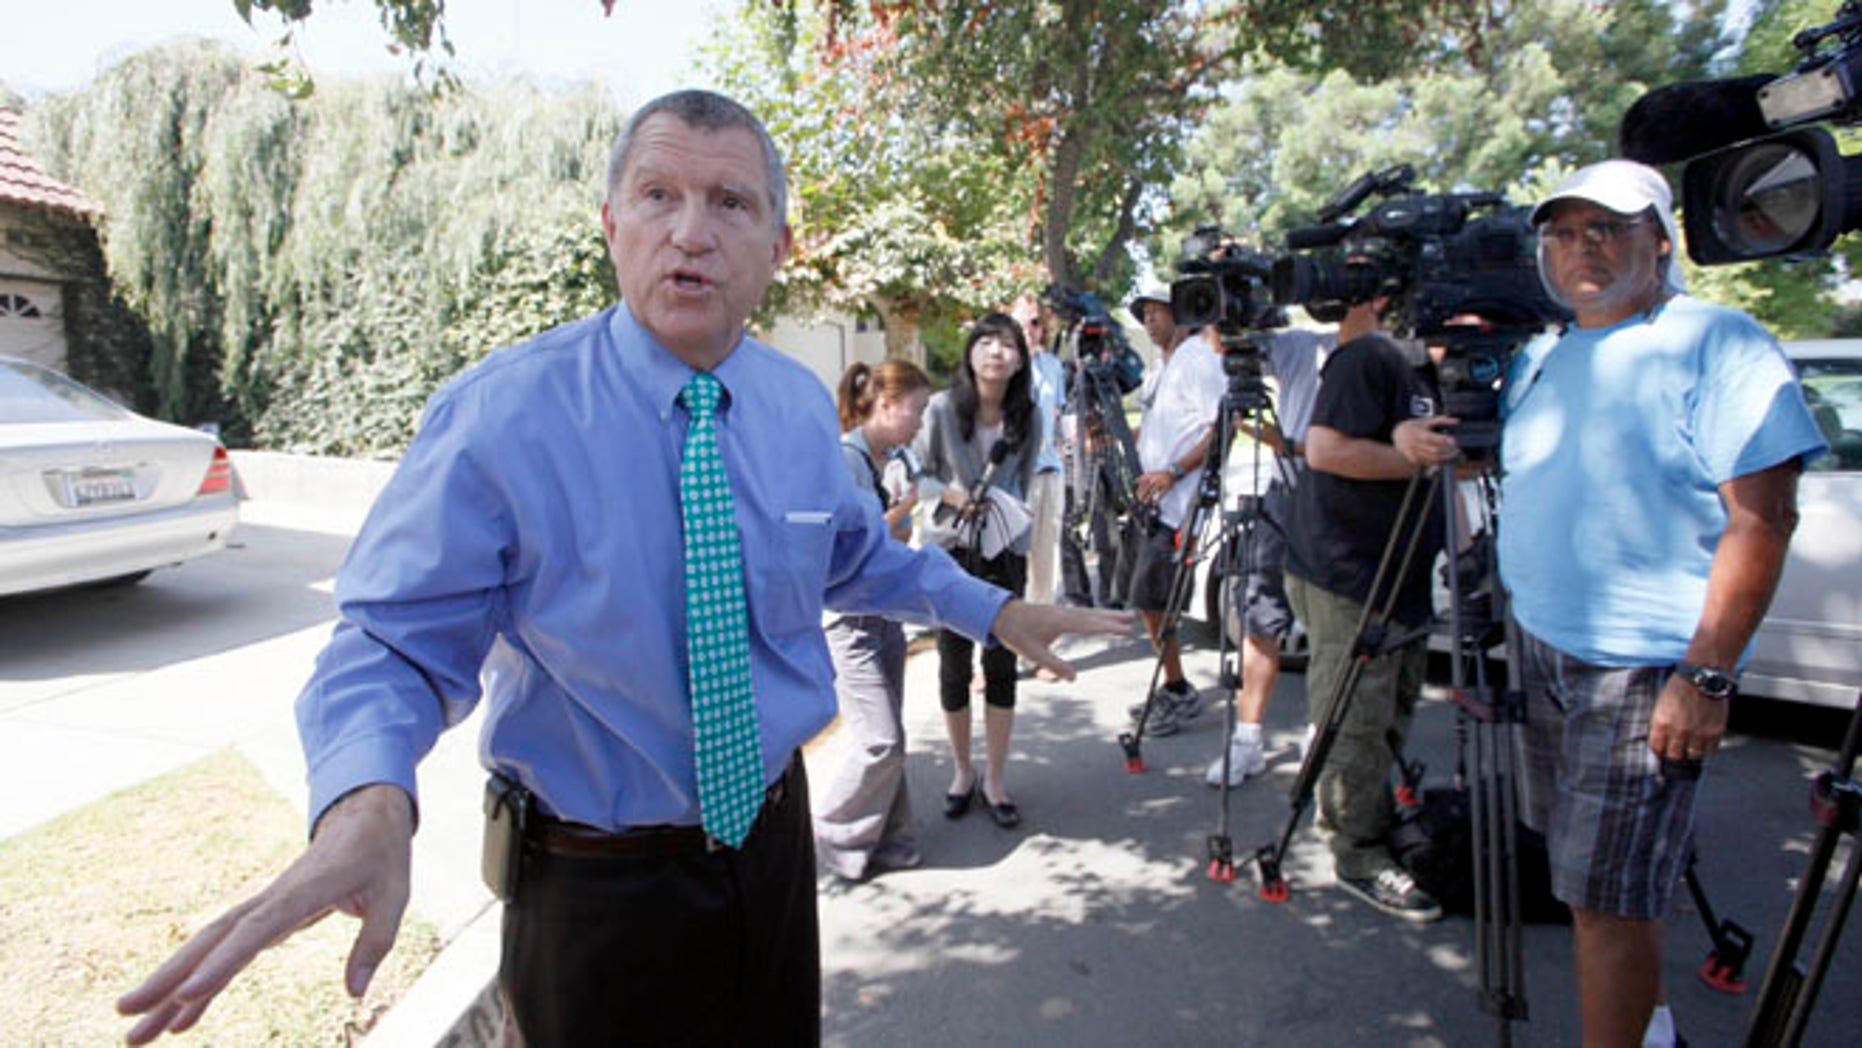 Sept. 13, 2012: Los Angeles Sheriff's Department spokesman Steve Whitmore speaks to media outside the home of Nakoula Basseley Nakoula in Cerritos, Calif.